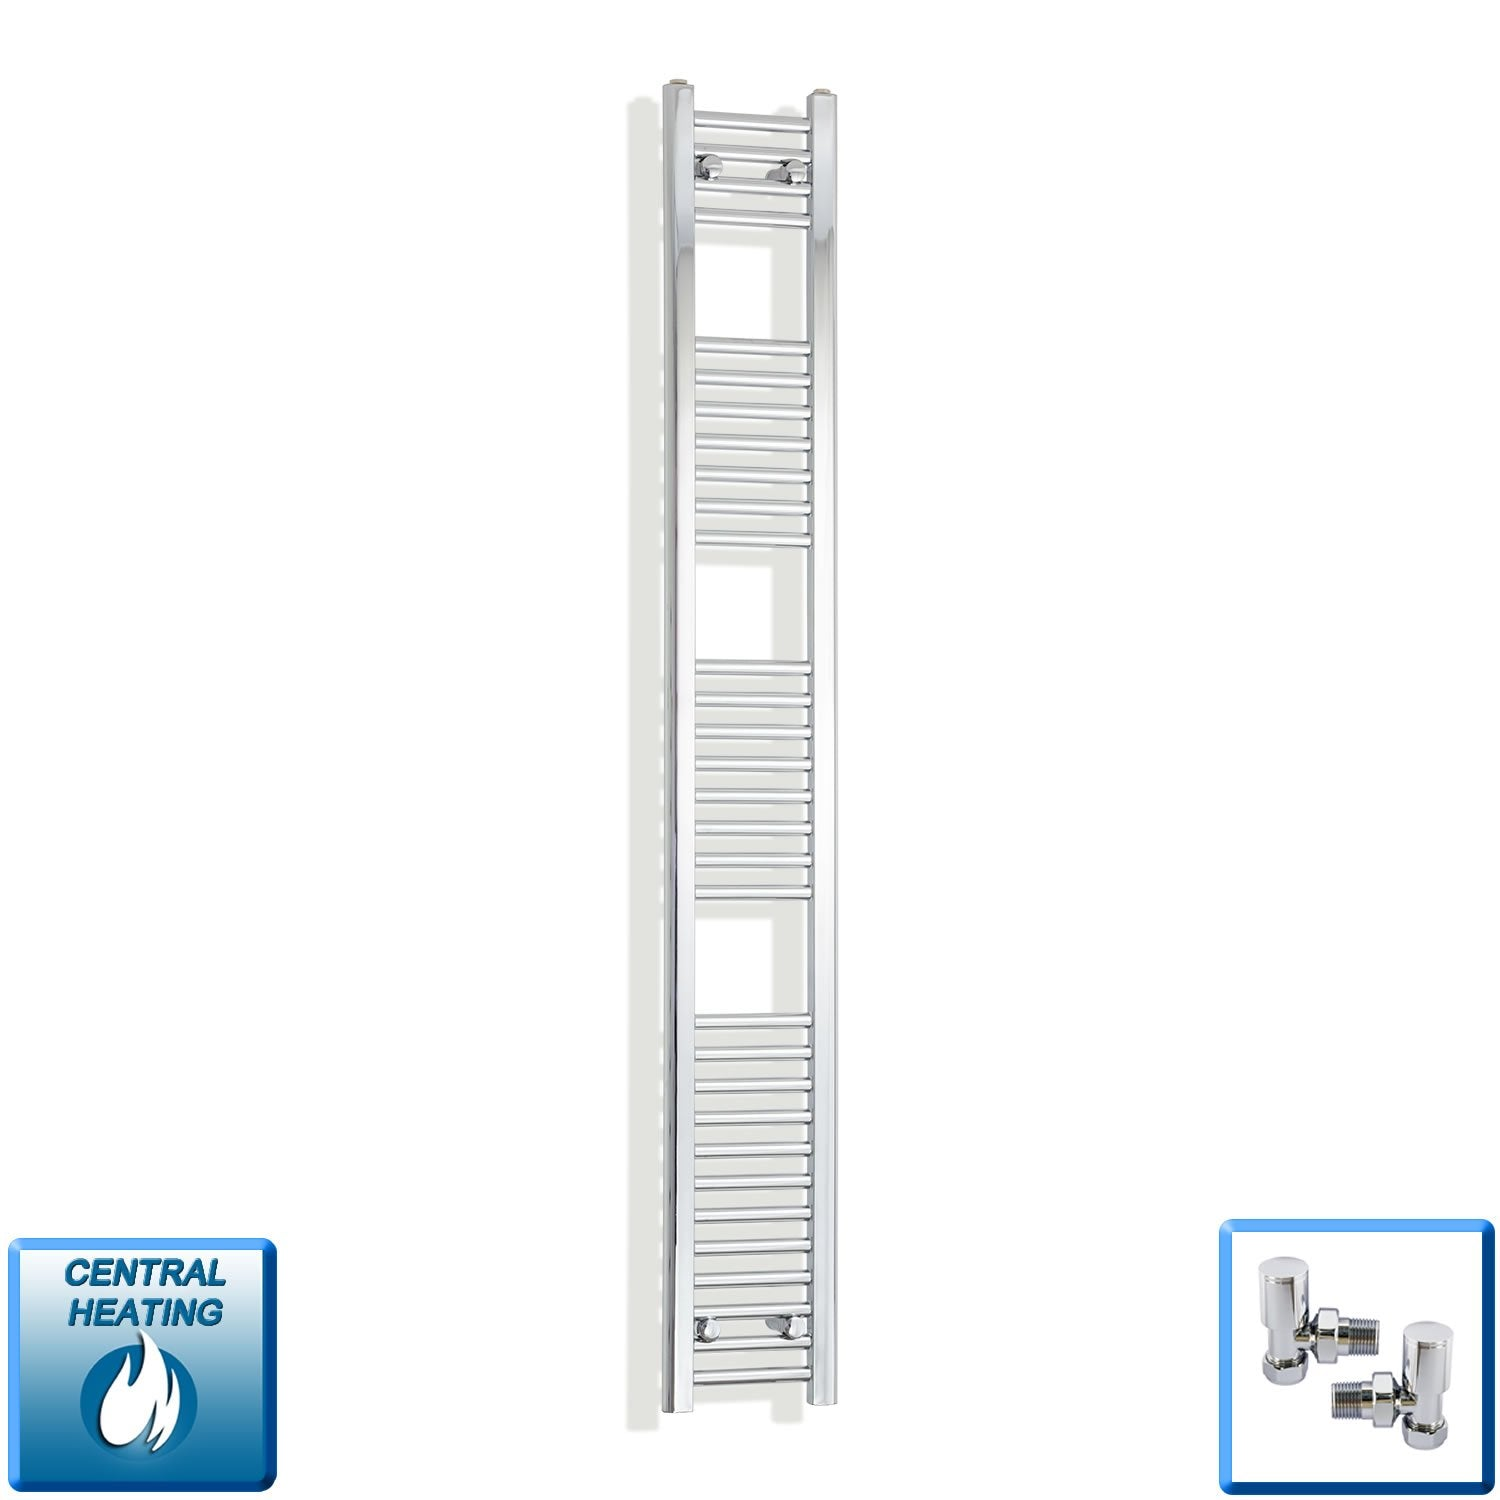 250mm Wide 1800mm High Flat Chrome Heated Towel Rail Radiator,With Angled Valve